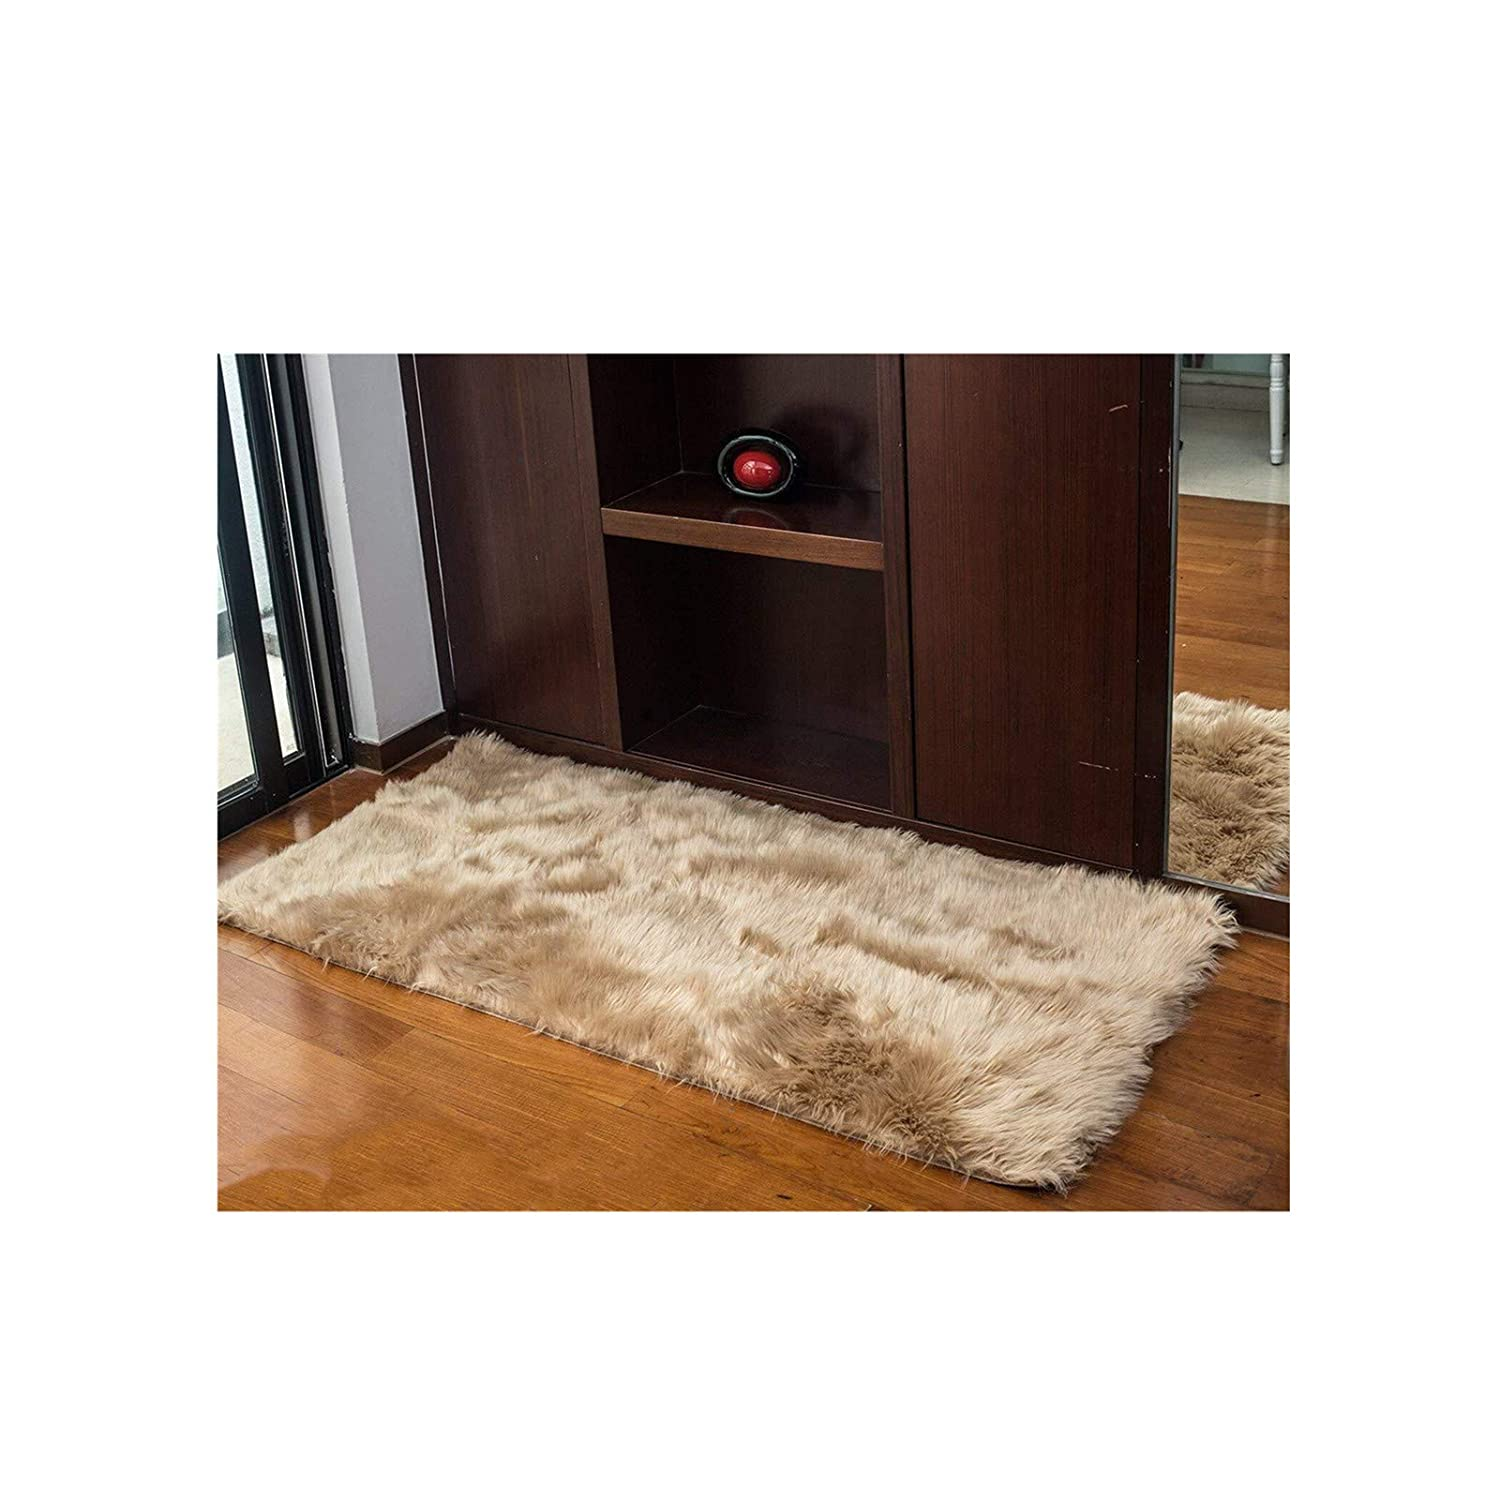 Monthly 50 * 150CM Faux Fur Rug Soft Fluffy Rug Shaggy Rugs Faux Sheepskin Rugs Floor Carpet for Living Room Bedrooms Decor (Brown)